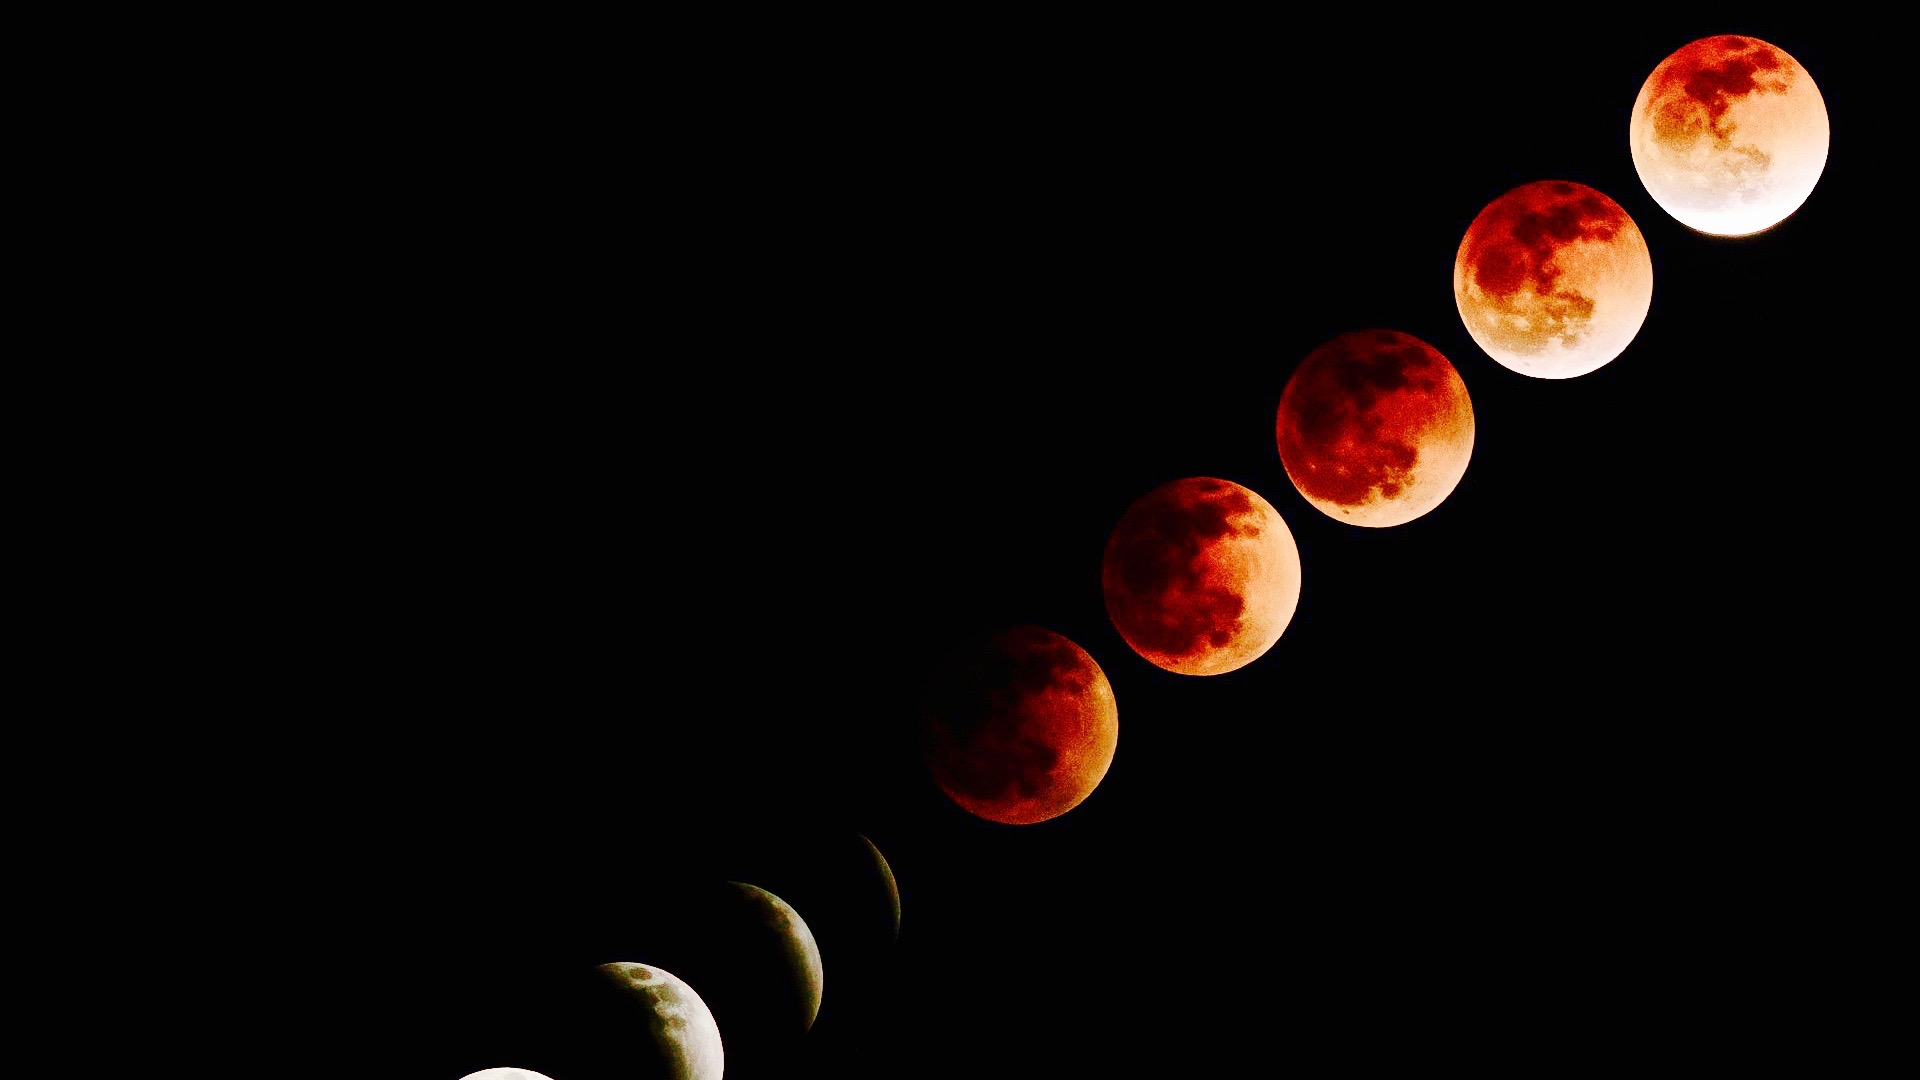 Blue Moon Lunar Eclipse How A Blood Moon In 1504 Shaped The World